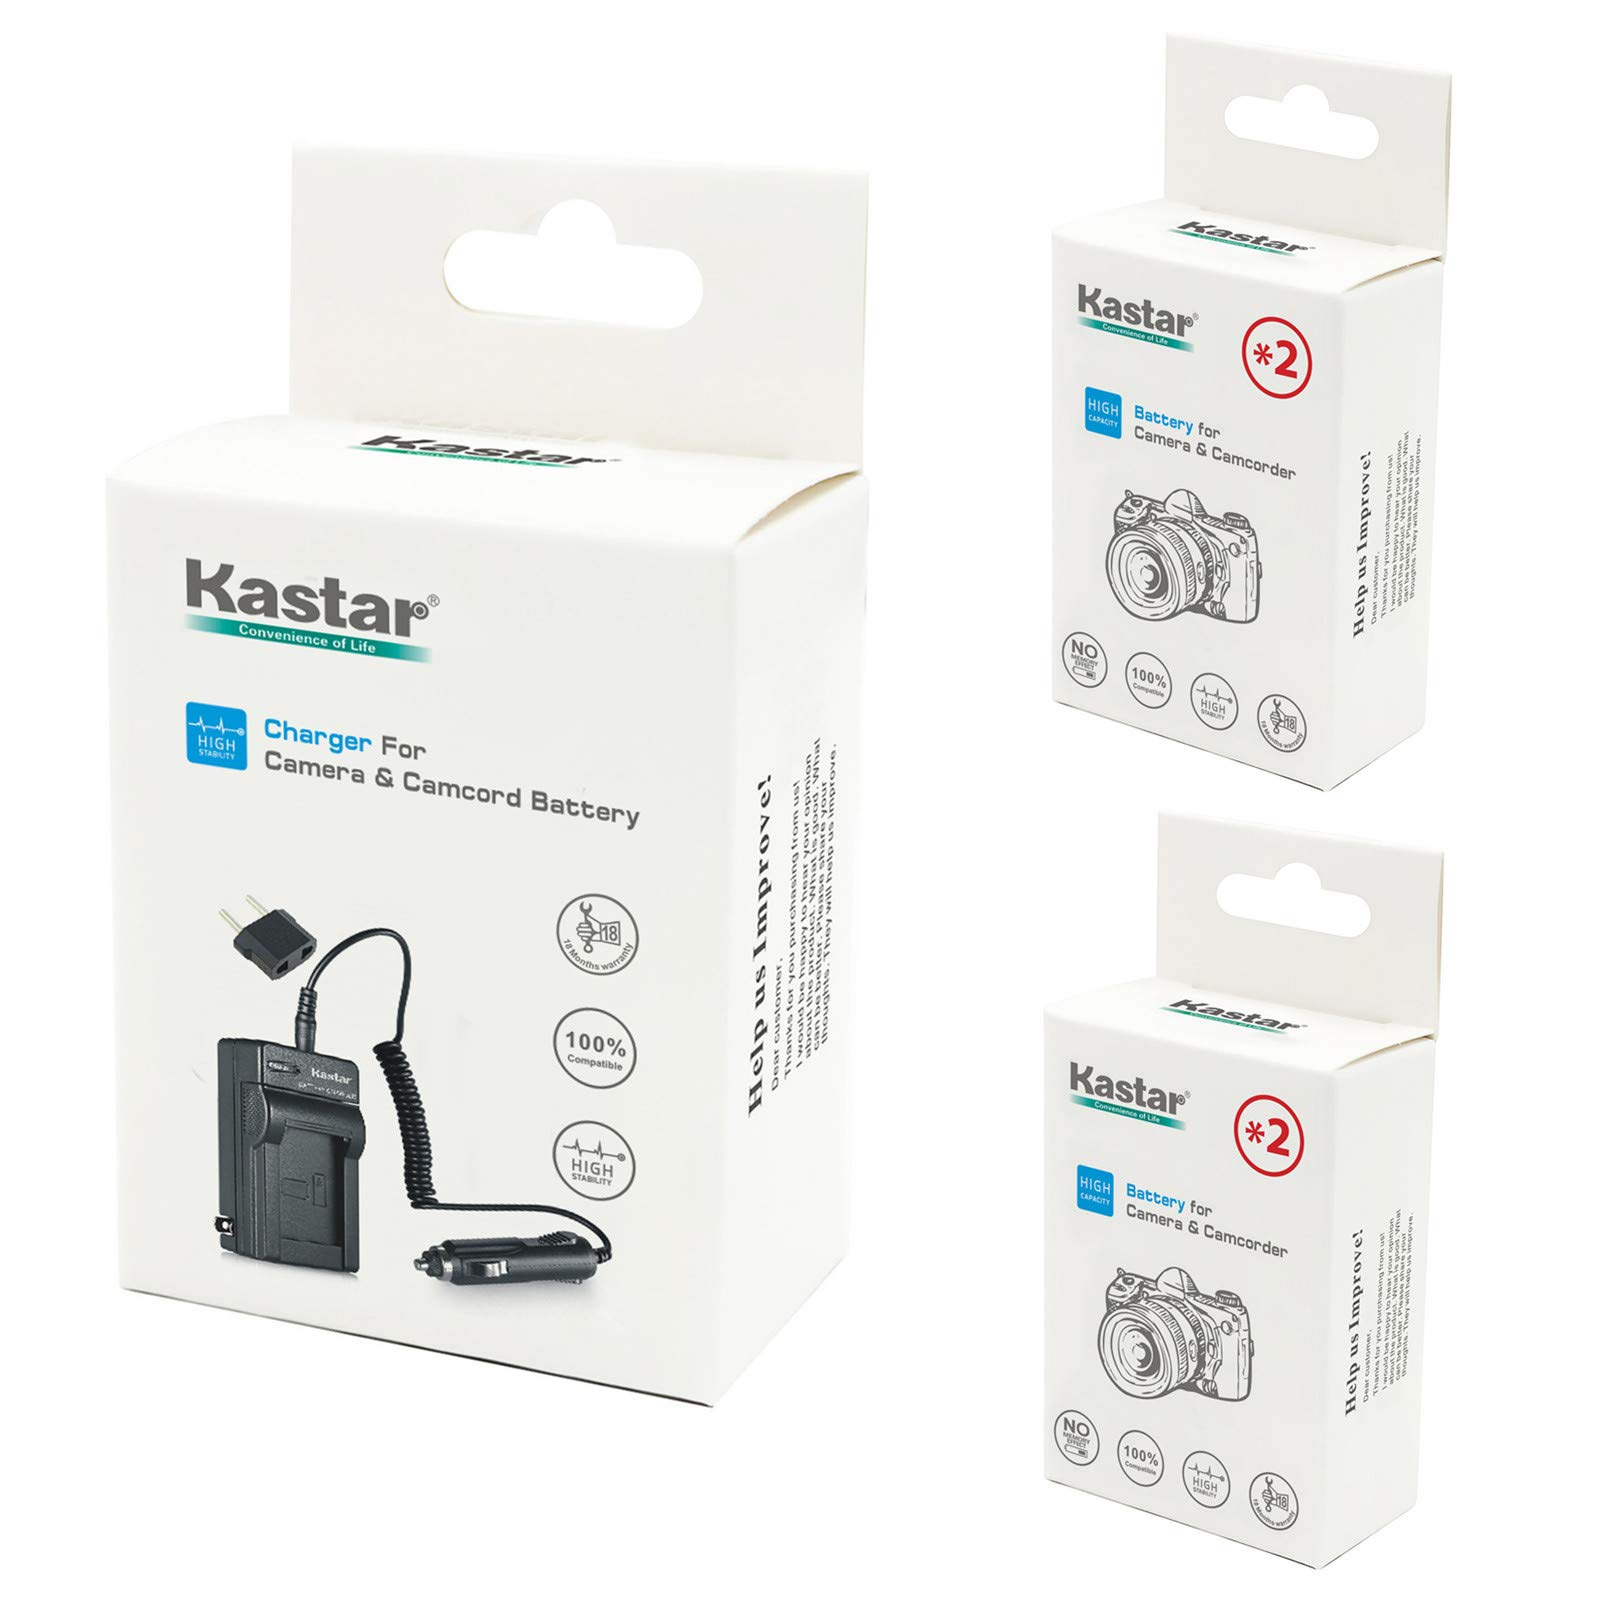 Kastar GOPRO3 Battery (4-Pack) and Charger Kit for GoPro HD HERO3, HERO3+, AHDBT-302 Work with GoPro AHDBT-201, AHDBT-301, AHDBT-302